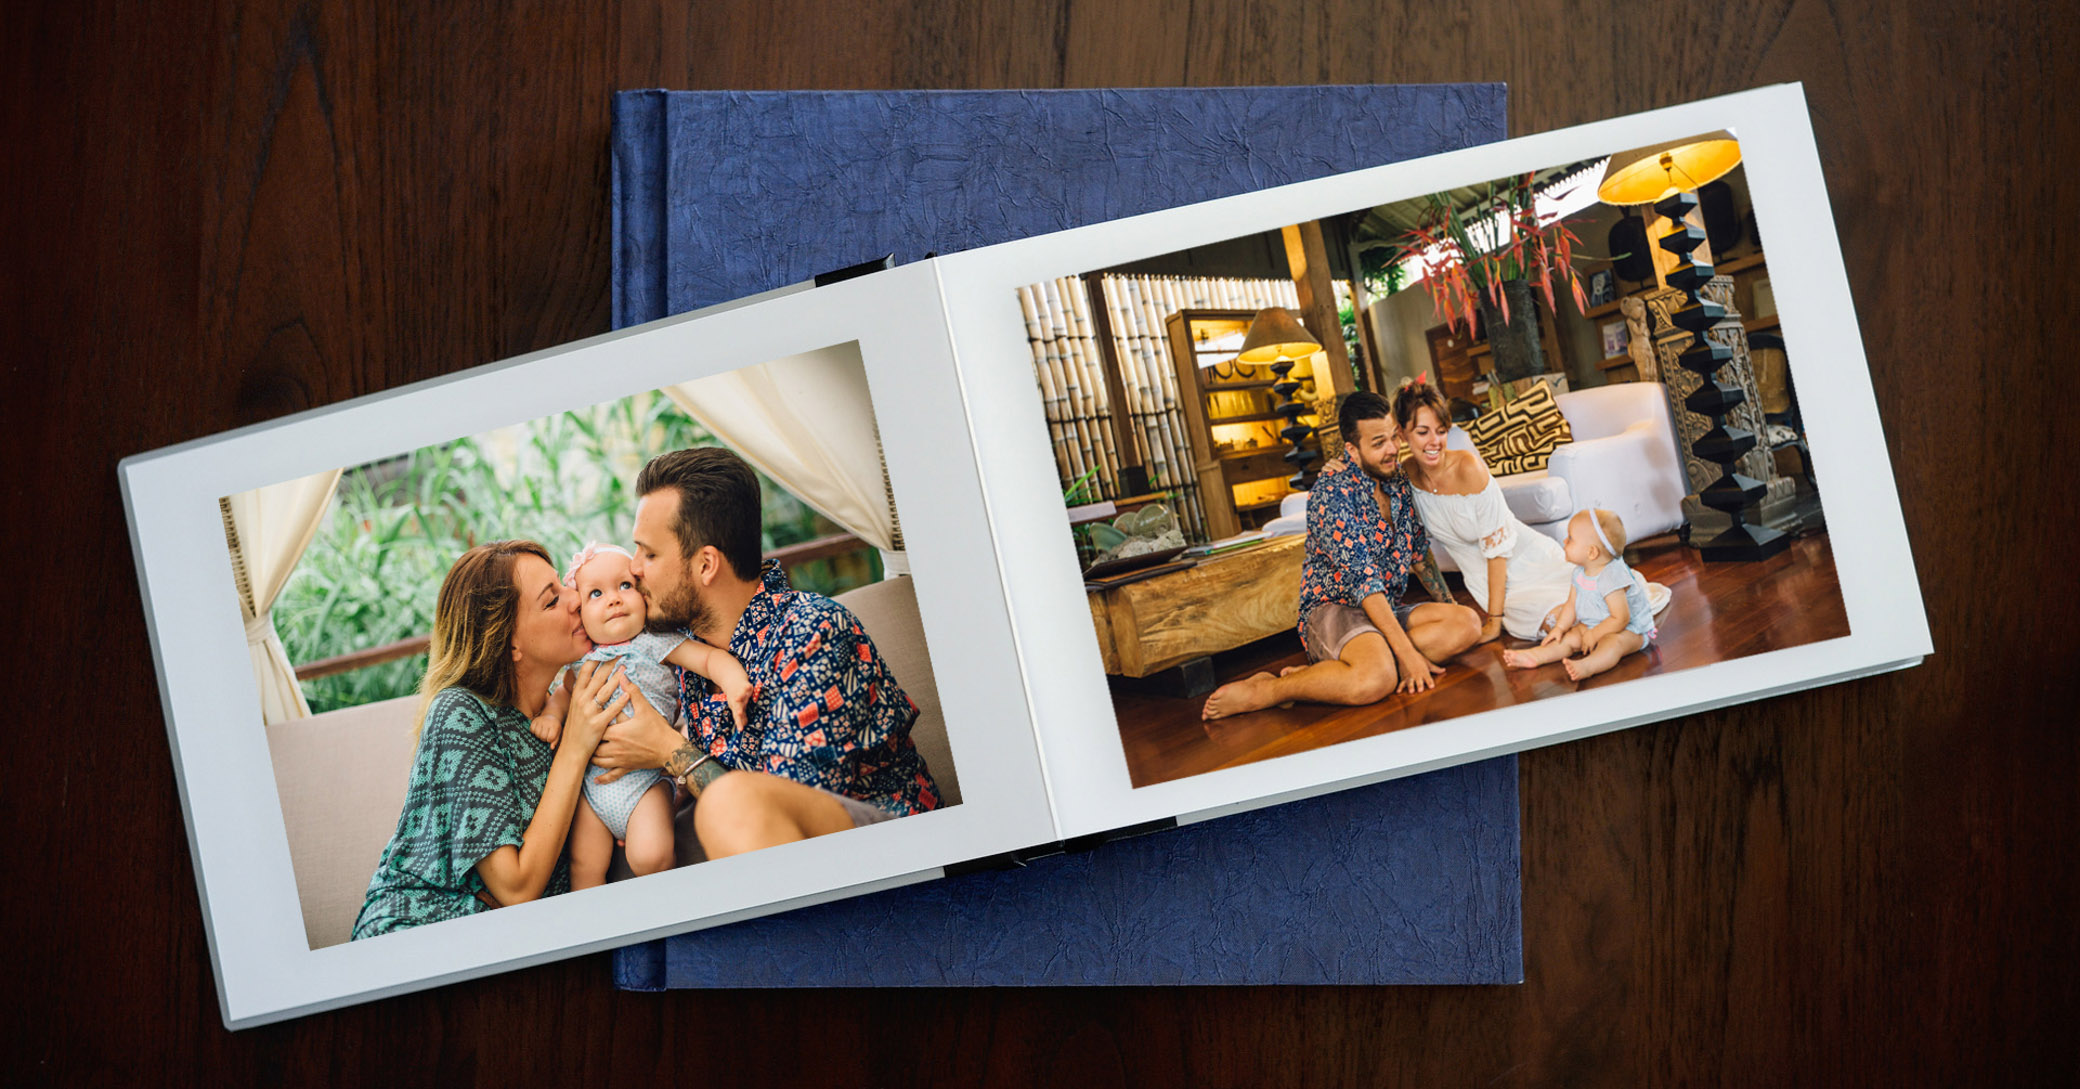 On the importance of wedding and family albums